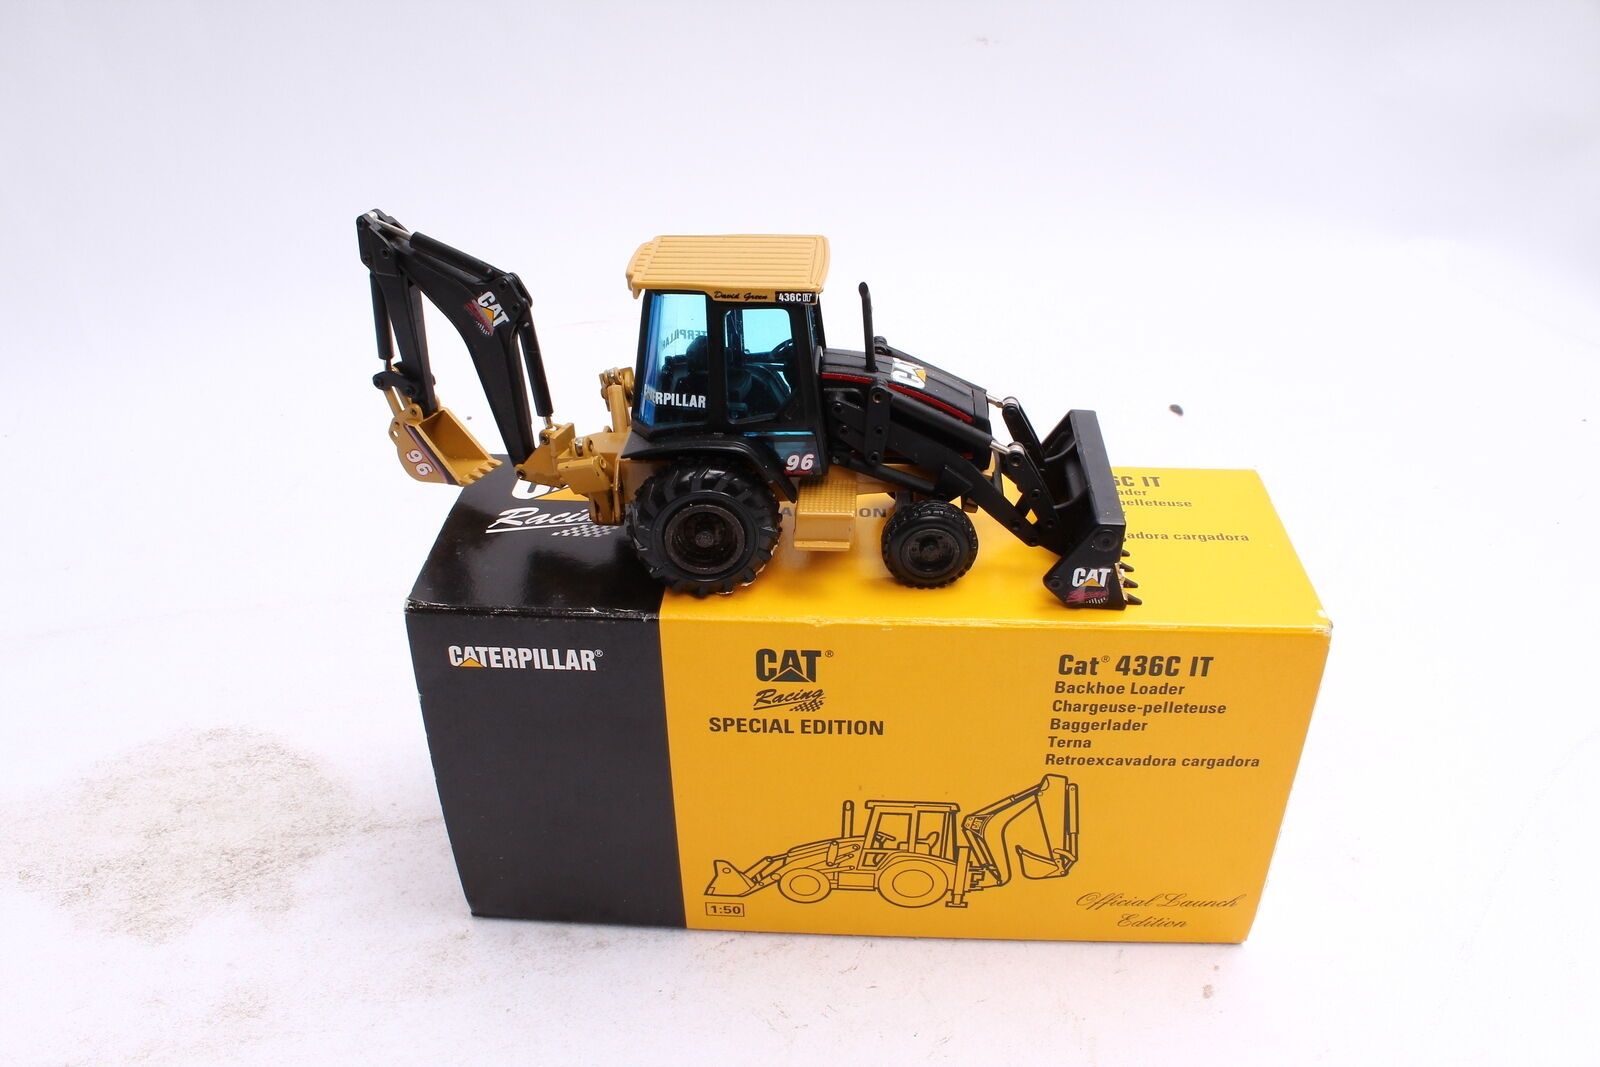 NZG 430 Caterpillar 436 C IT Baggerlader 96 1 50